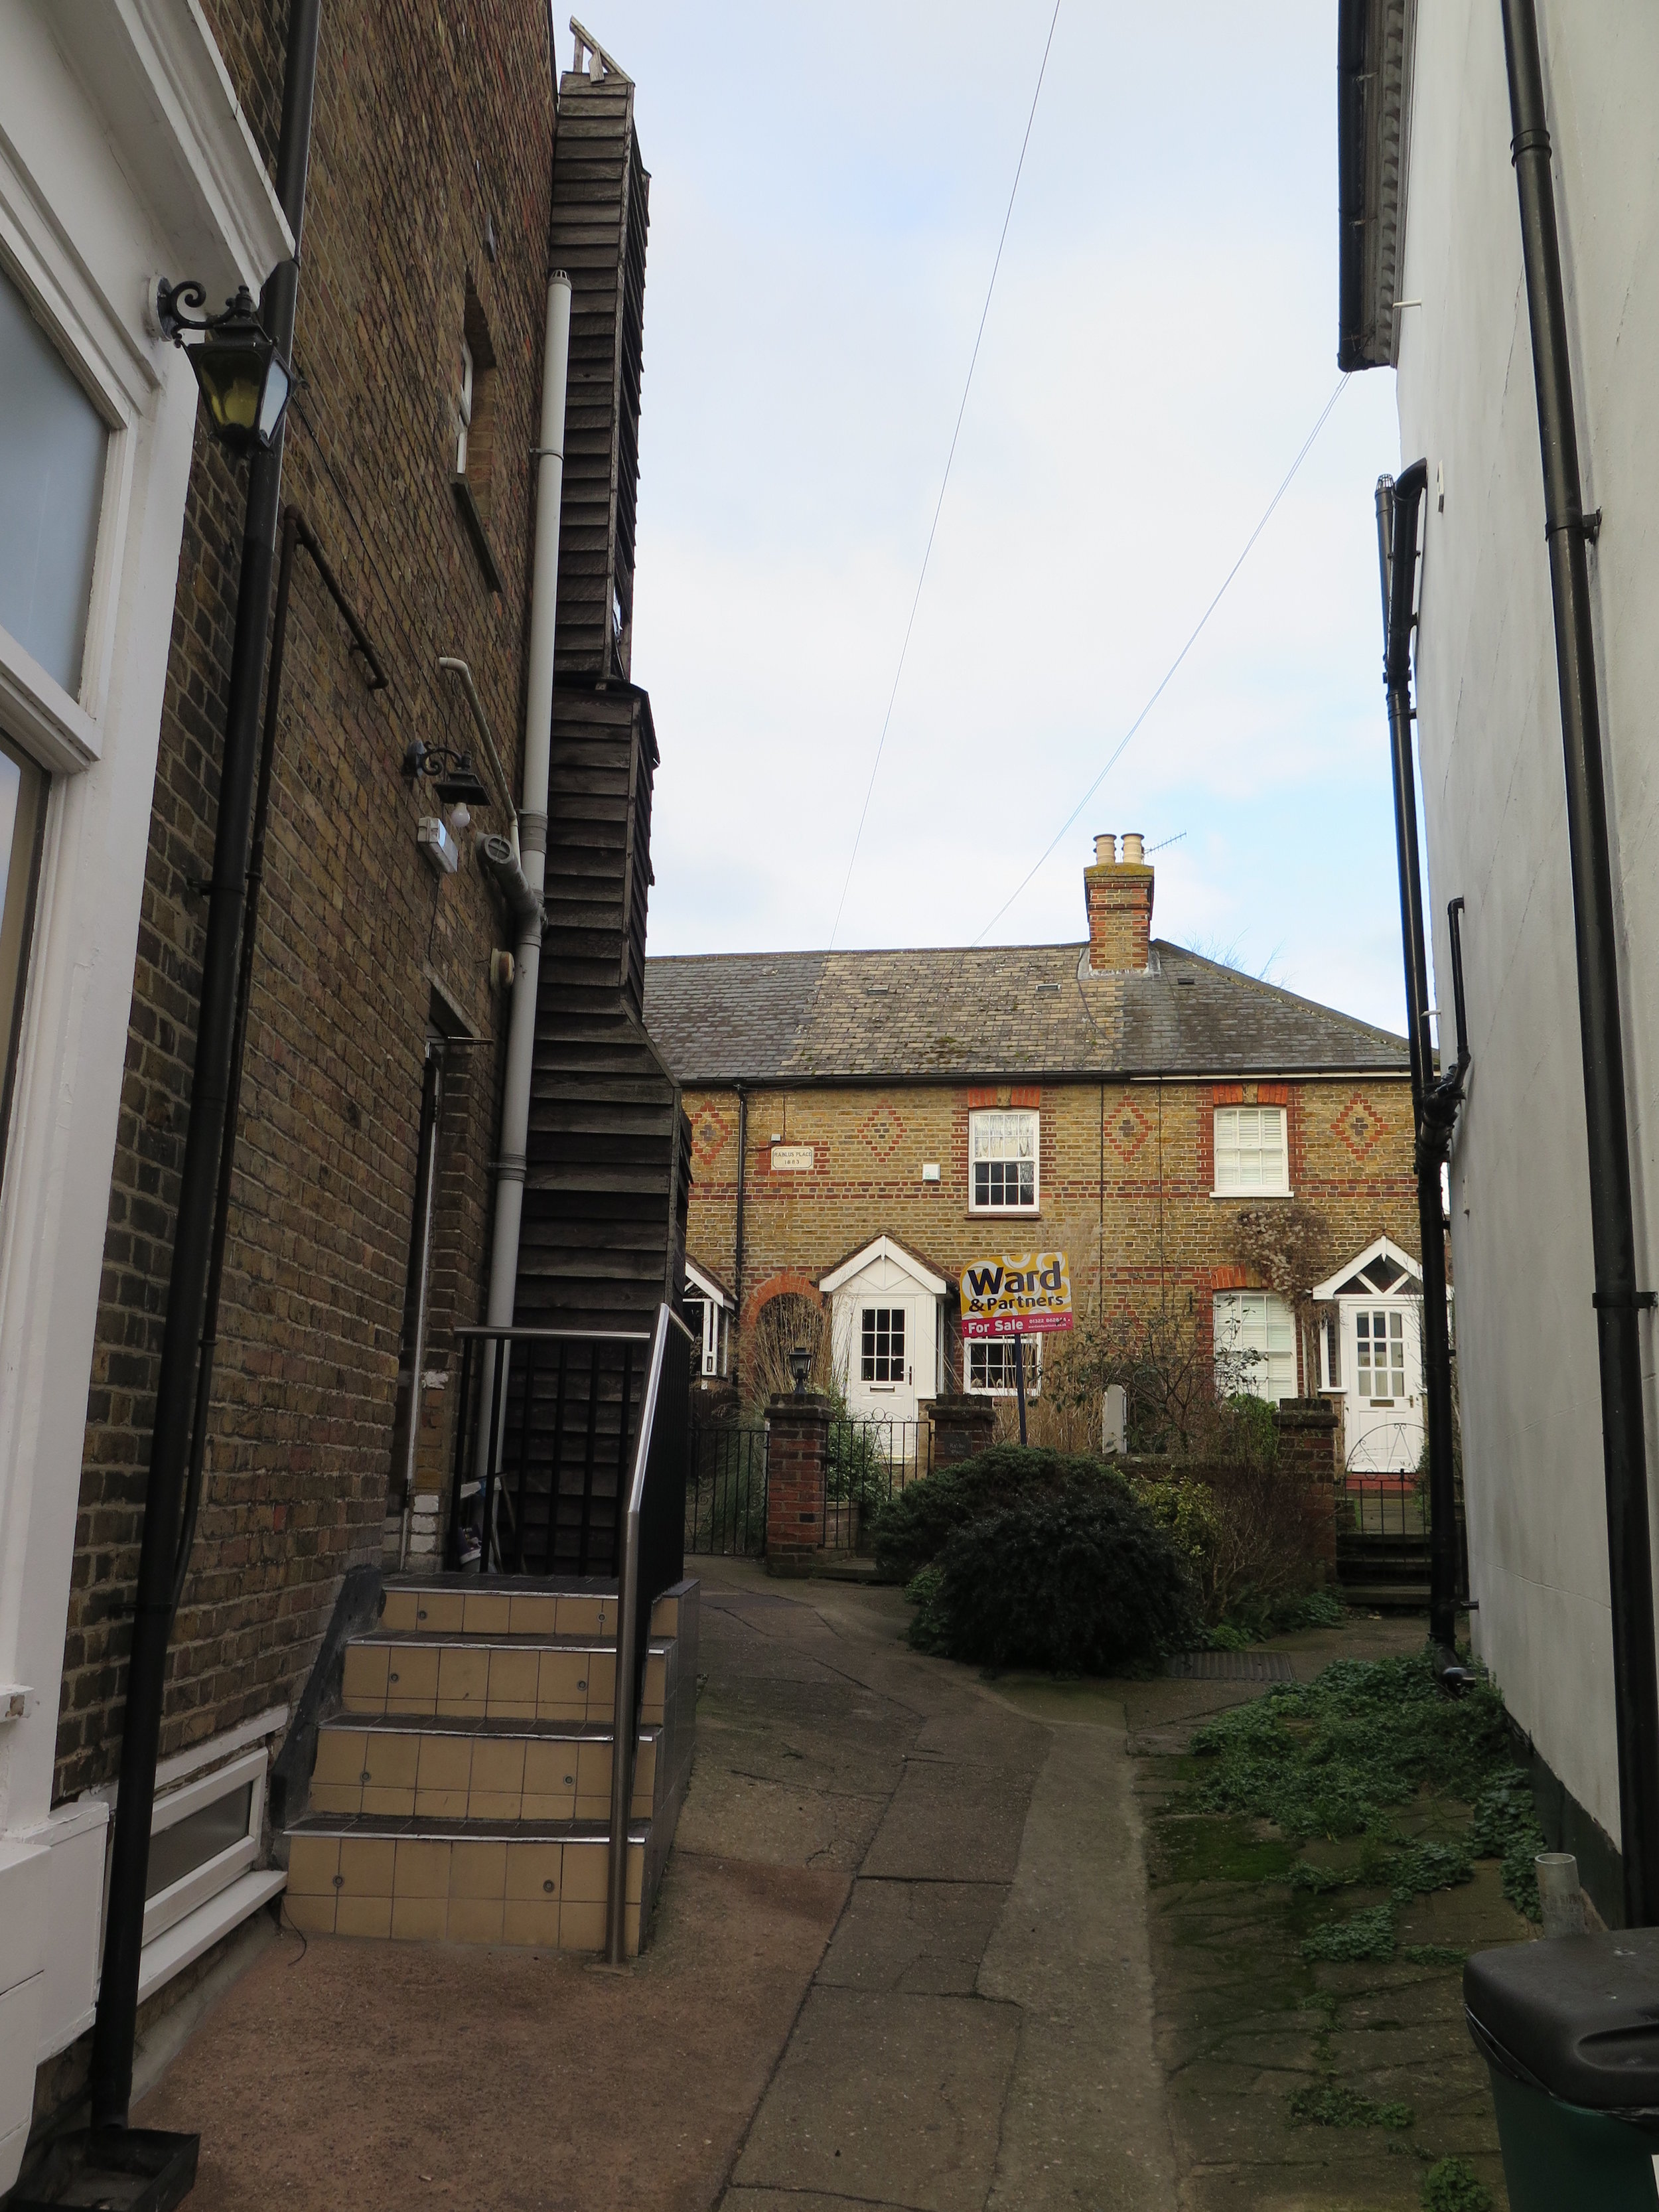 Yards and houses set back from the High Street -